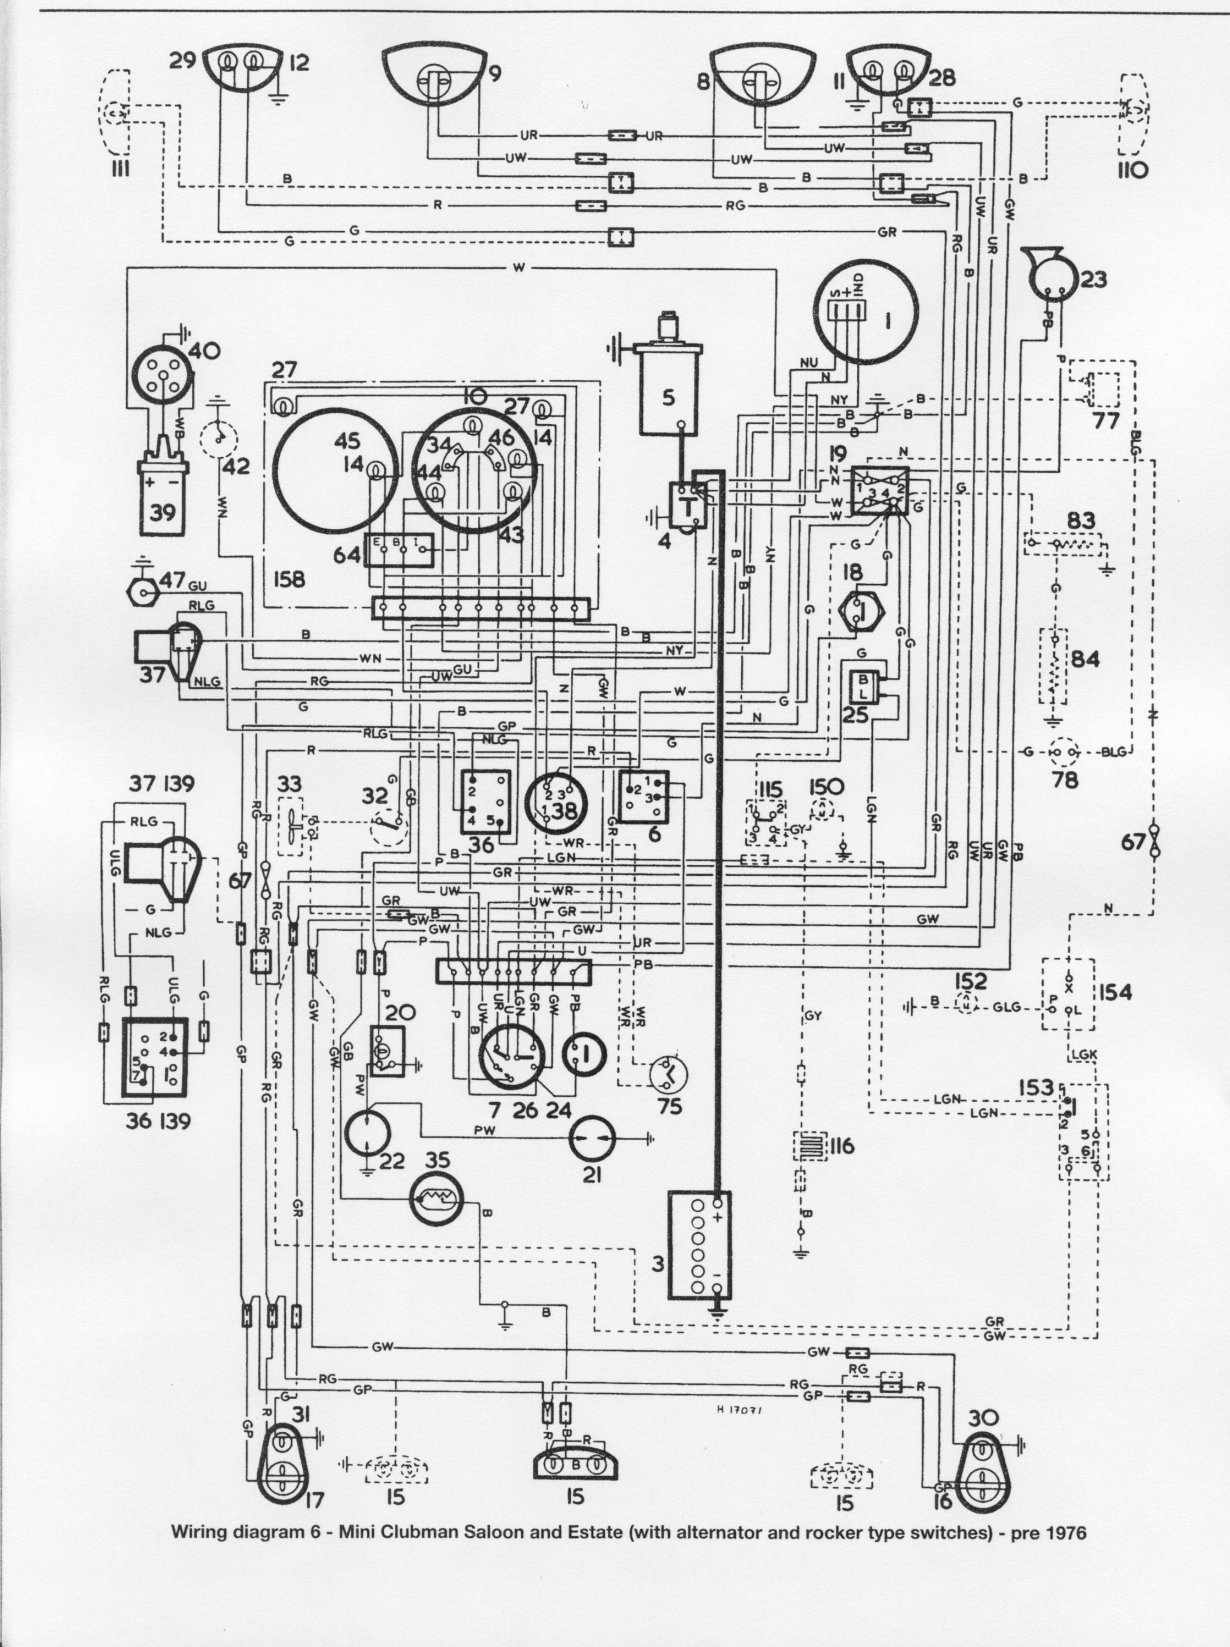 mini car manuals wiring diagrams pdf fault codes rh automotive manuals net mini r56 wiring diagrams bmw mini wiring diagrams